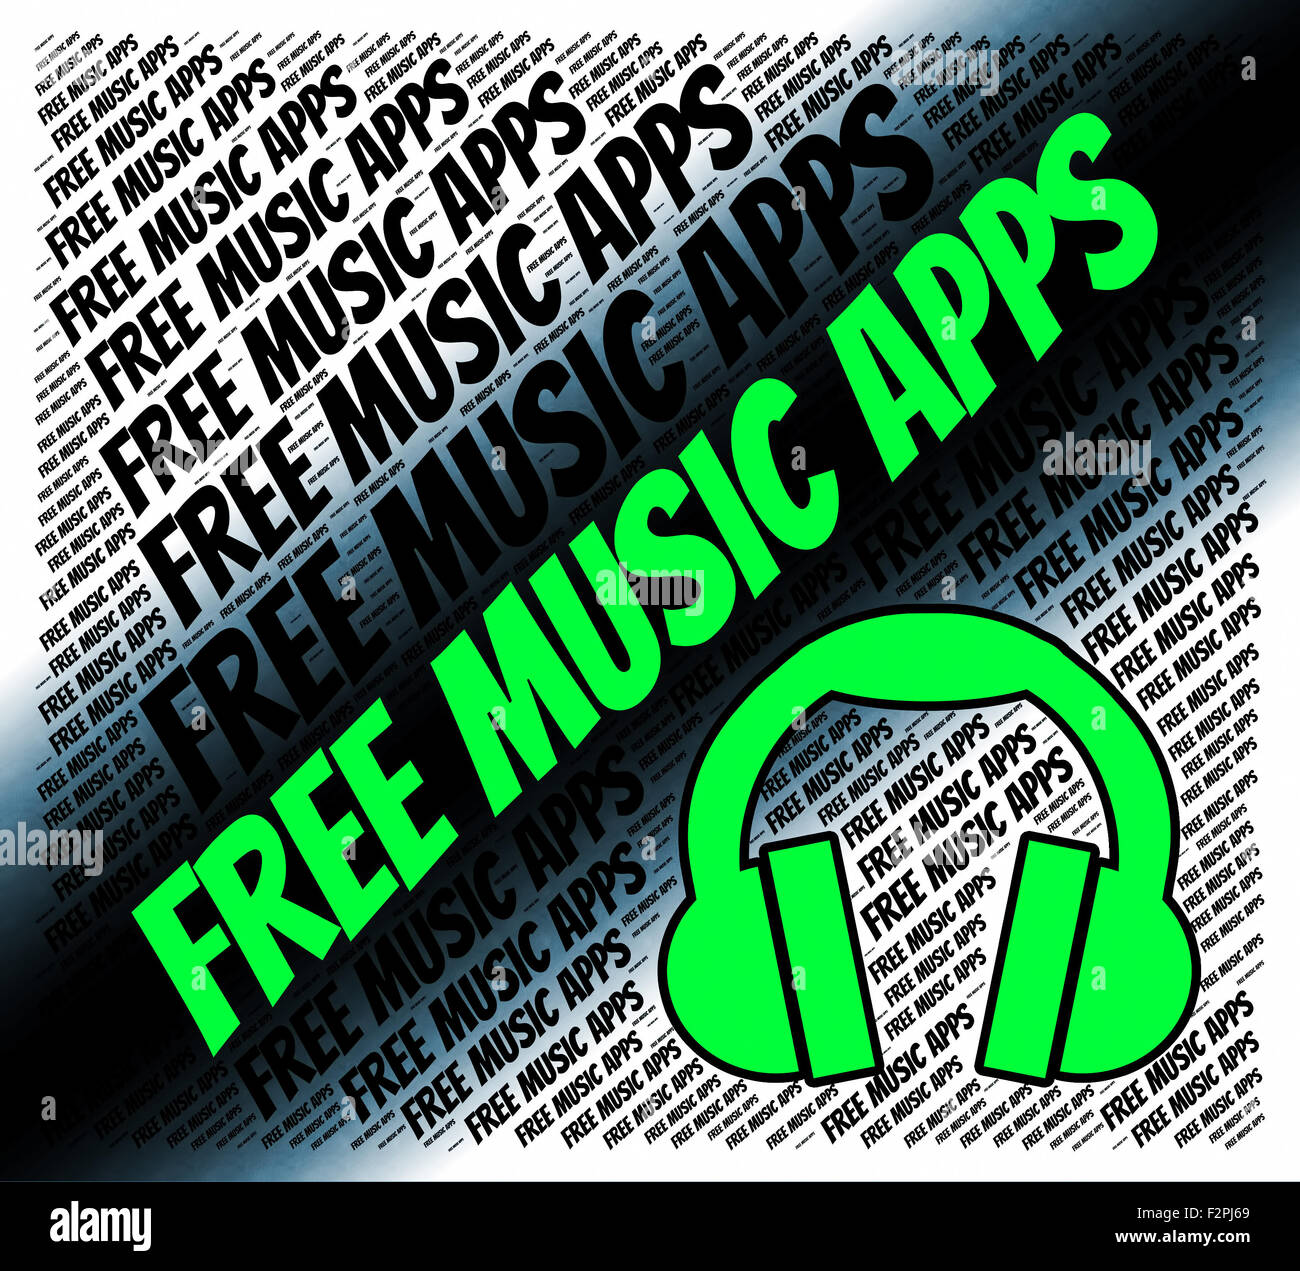 Free Internet Music Showing Sound Stock Photos & Free